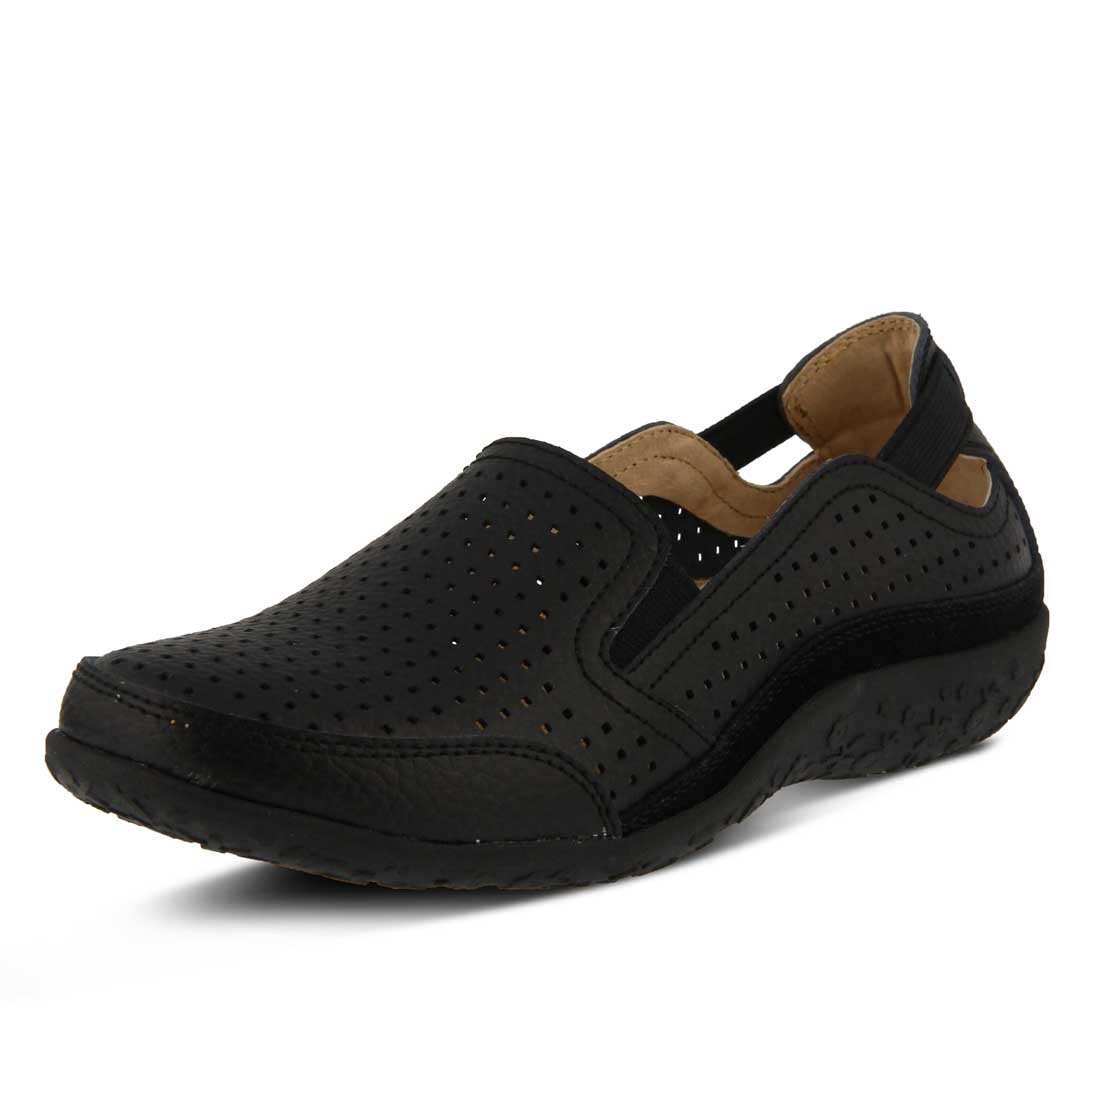 Spring Step Women's Juhi Perforated Slip On B06XQGH5K2 37 D EU / 6.5-7 D US Women|Black